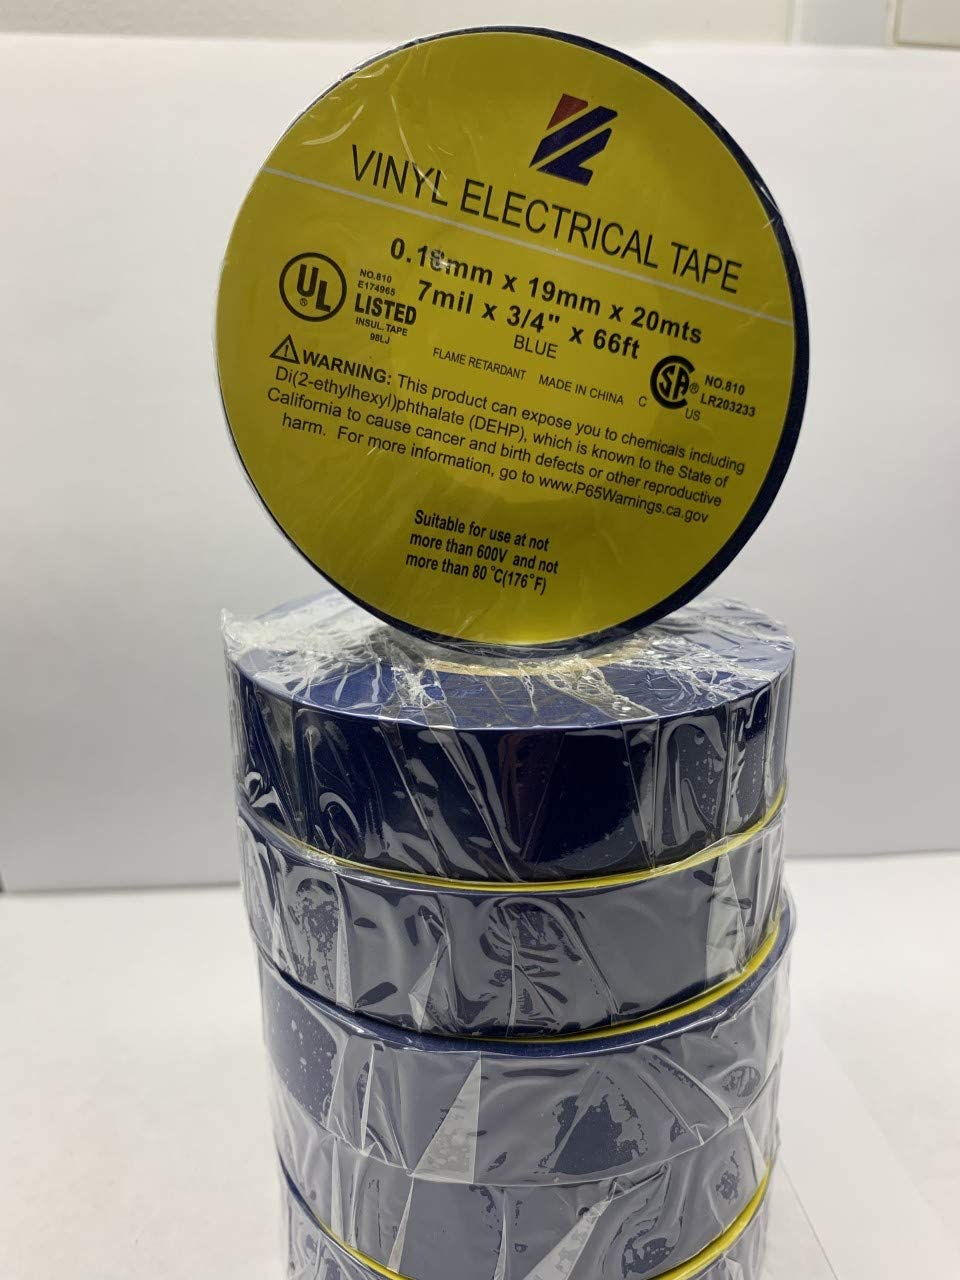 X 66FT PROFESSIONAL ELECTRICAL TAPE ELECTRICAL TAPE UL//CSA LISTED CORE UTILITY VINYL RUBBER ADHESIVE ELECTRICAL TAPE: 3//4IN - FLAME RETARDANT 1 ROLL BLACK